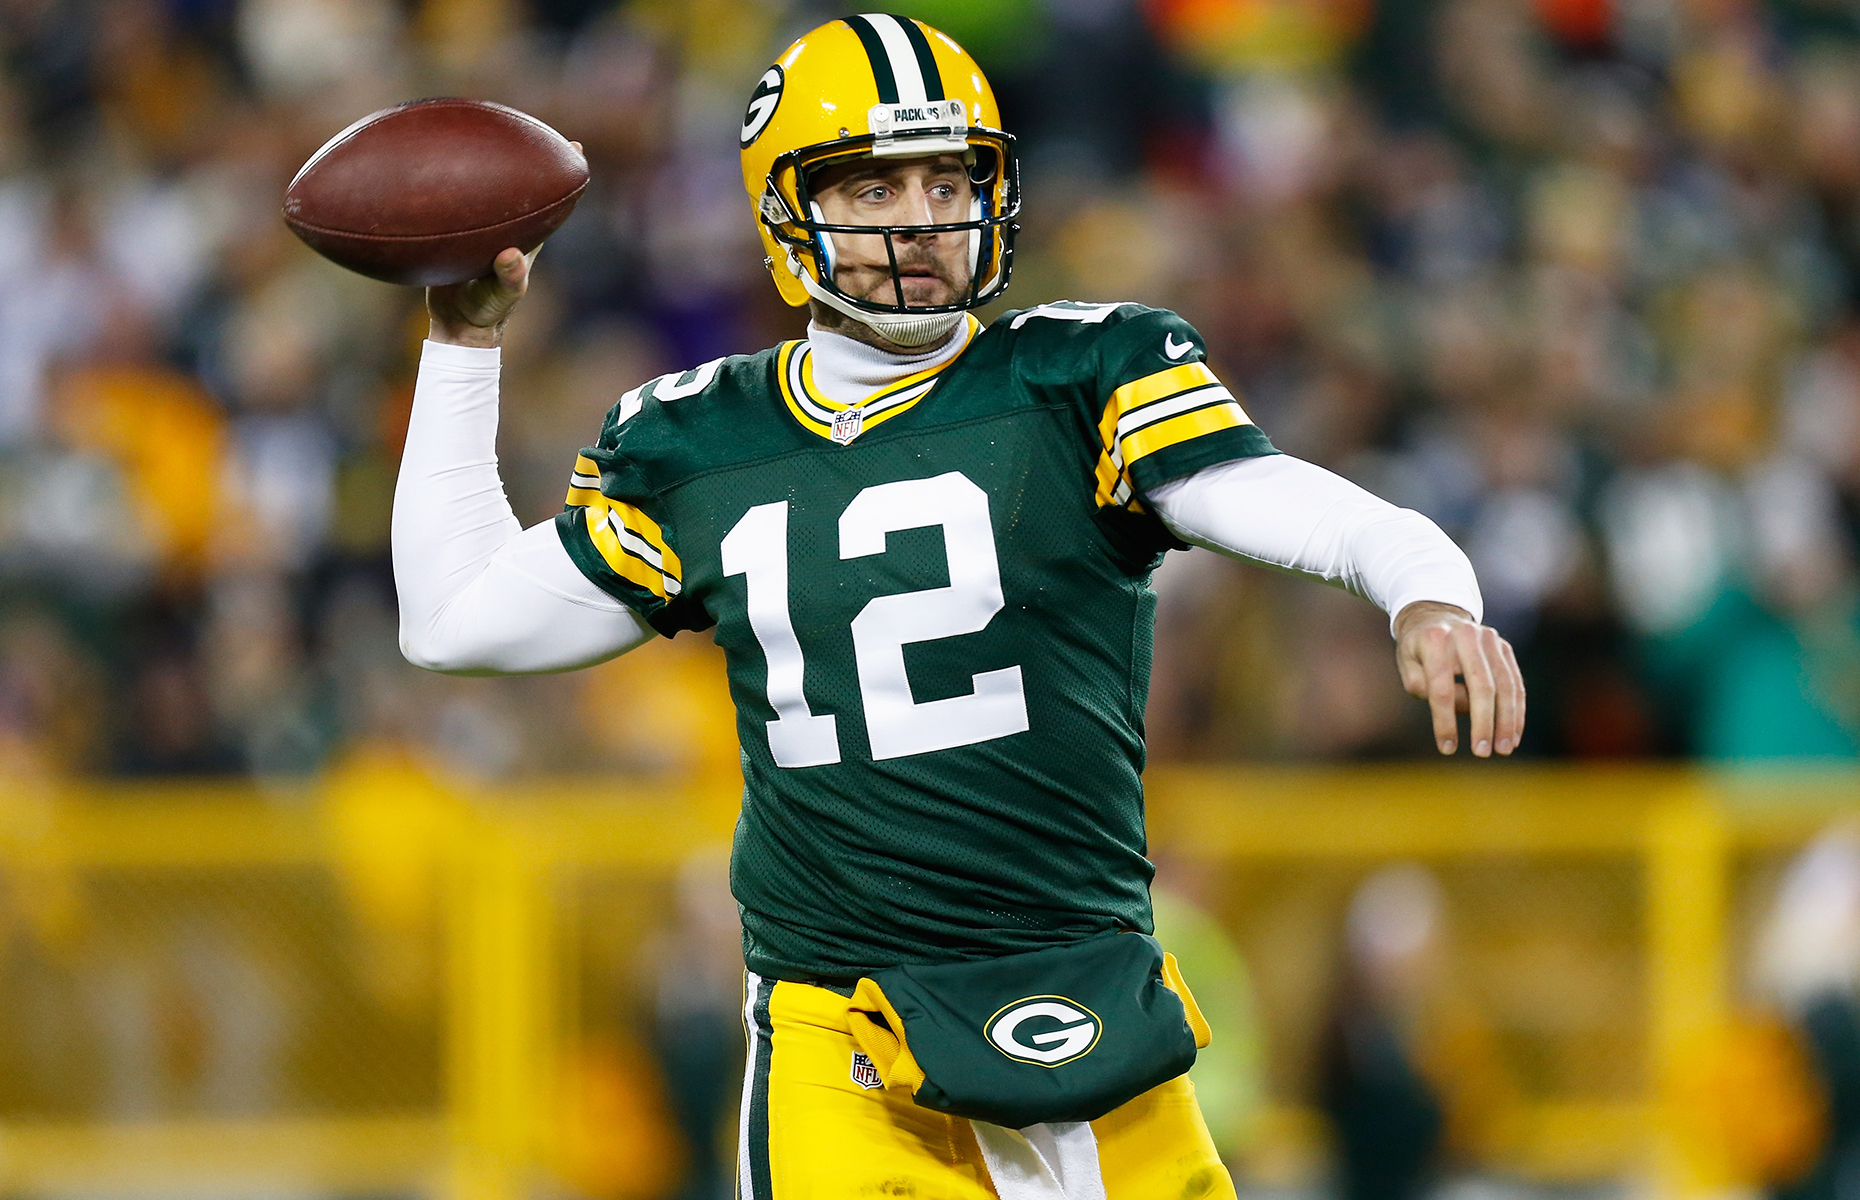 image regarding Green Bay Packer Printable Schedule identify Inexperienced Bay Packers Information, Rankings, Timetable, Figures, Roster